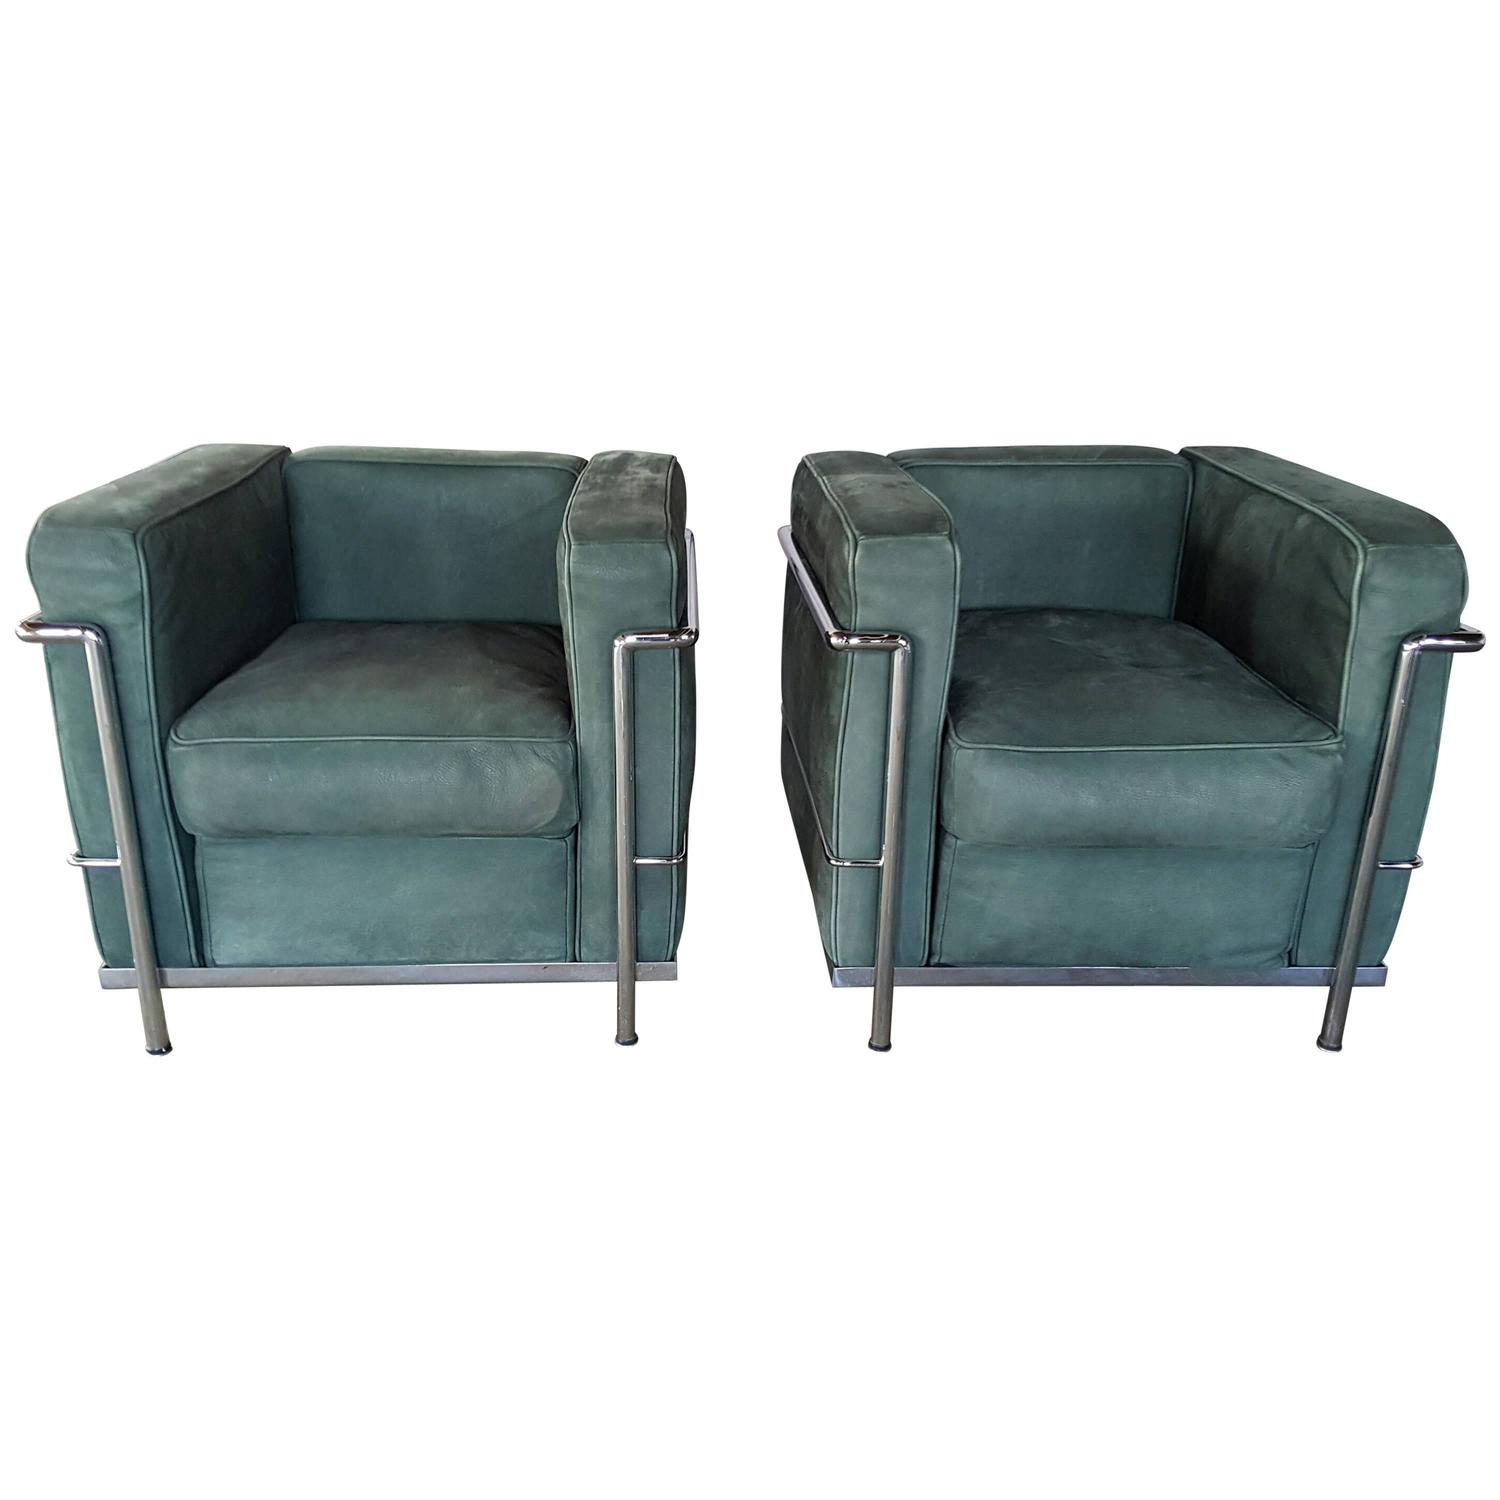 Pair of le corbusier lc2 lounge chairs green suede and for Le corbusier lc2 nachbau